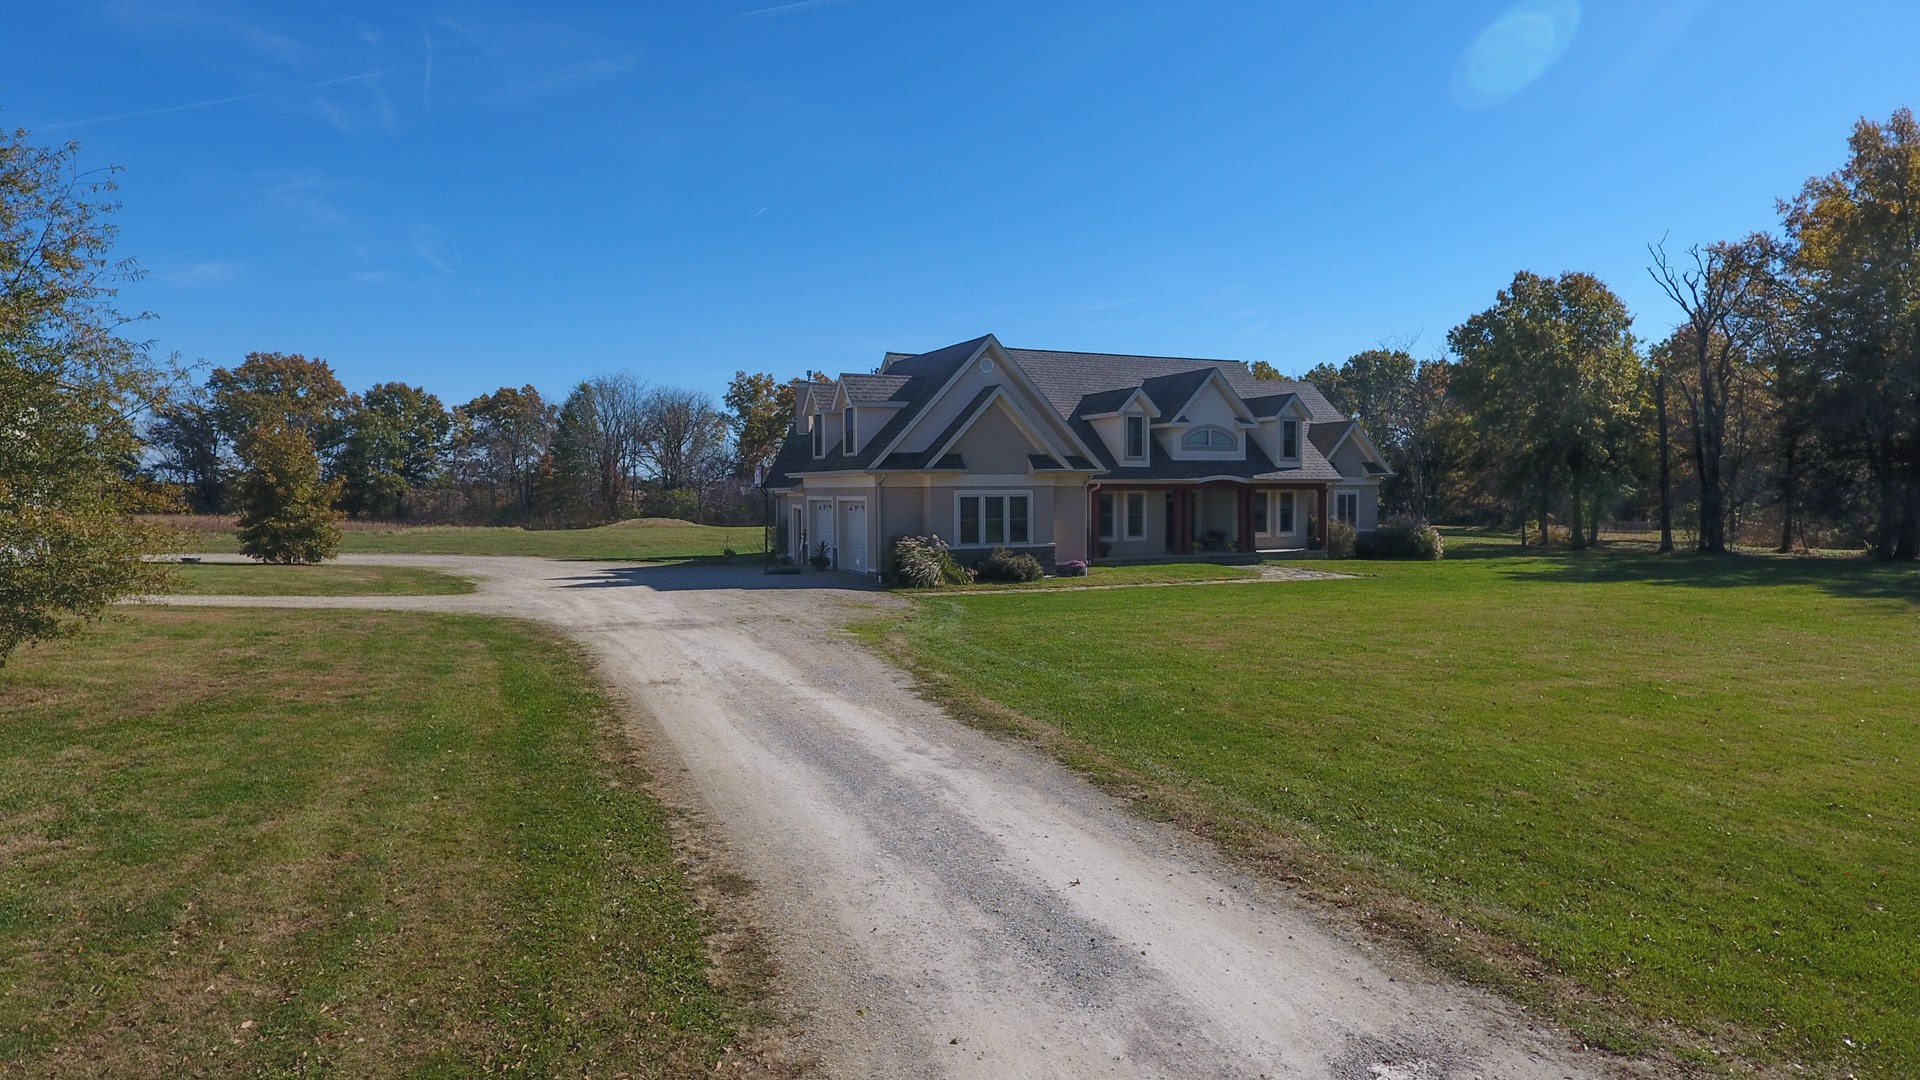 4 BR, 3.5 BA Country Home in Mexico, MO